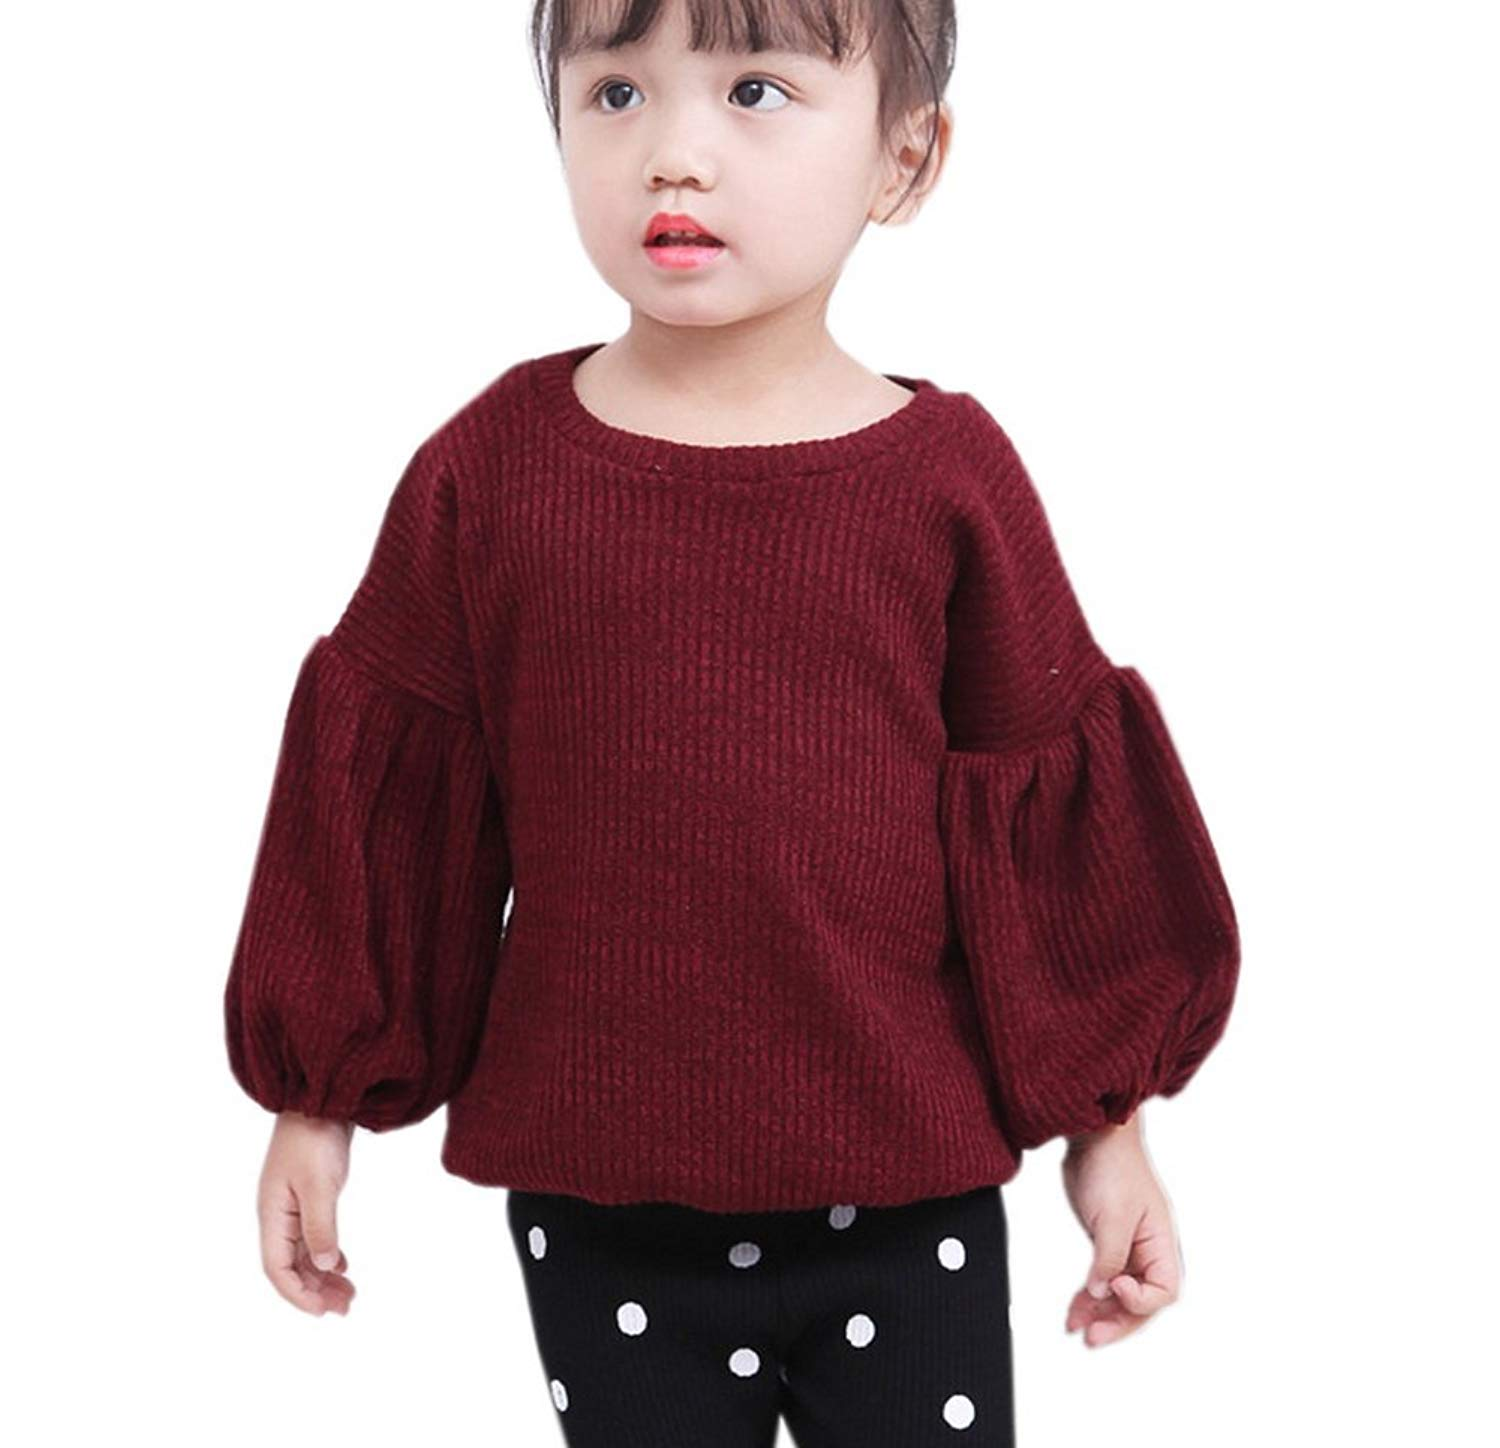 53f1ce8535e Get Quotations · Vokamara Casual Top Wine Red Lantern Sleeve T Shirt for  Toddler Girls